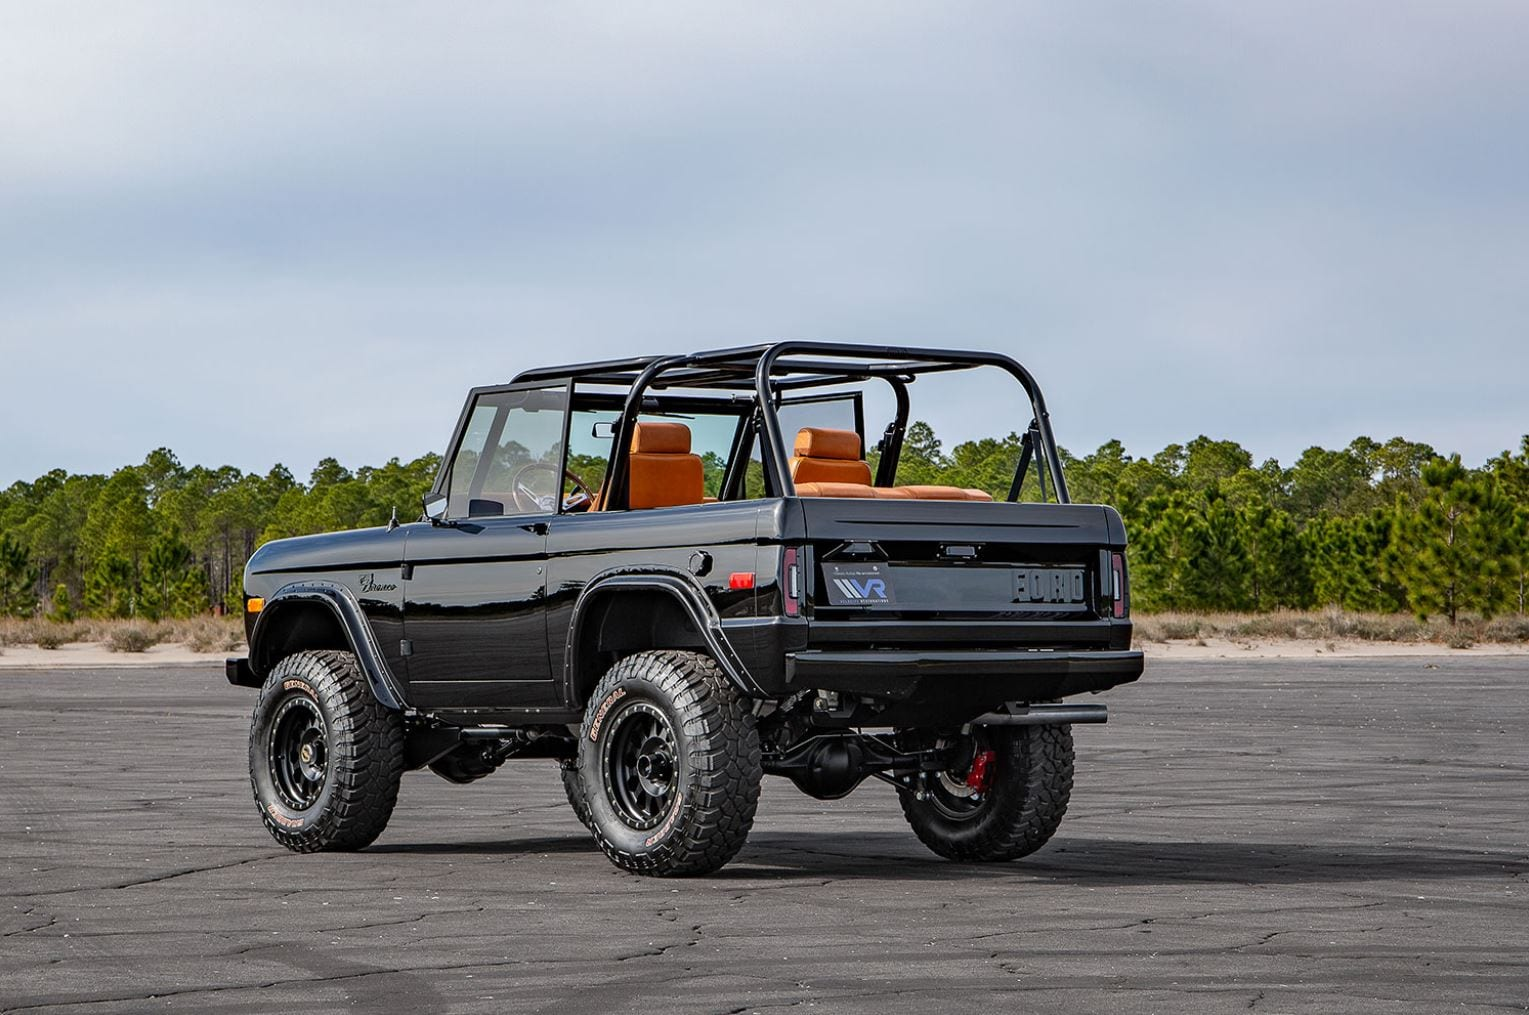 1969 Ford Bronco Supercharged Coyote 5 0 is Brilliant - The